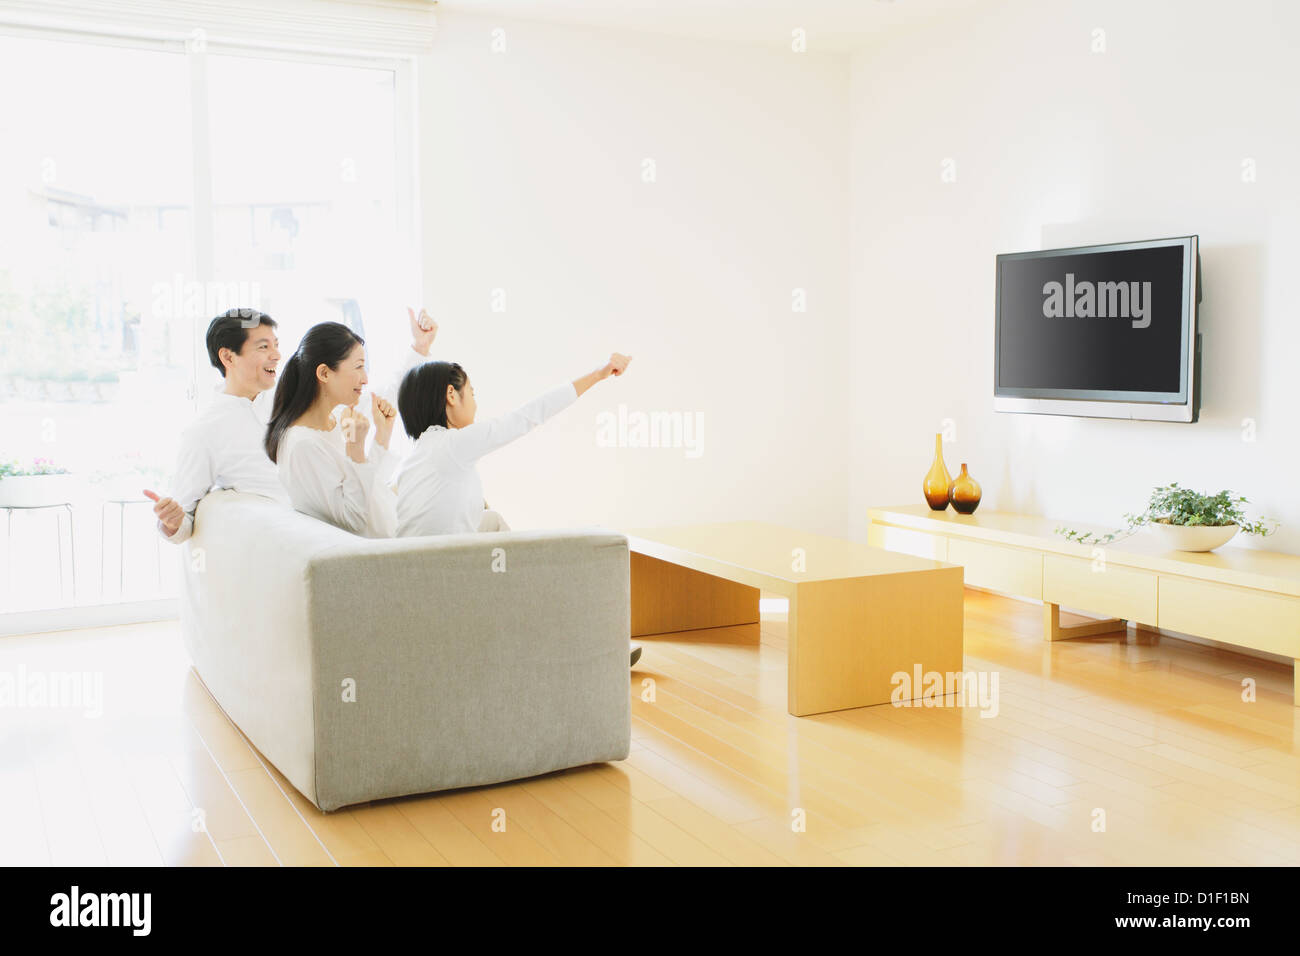 Family Of Three People Watching TV On The Sofa In Living Room